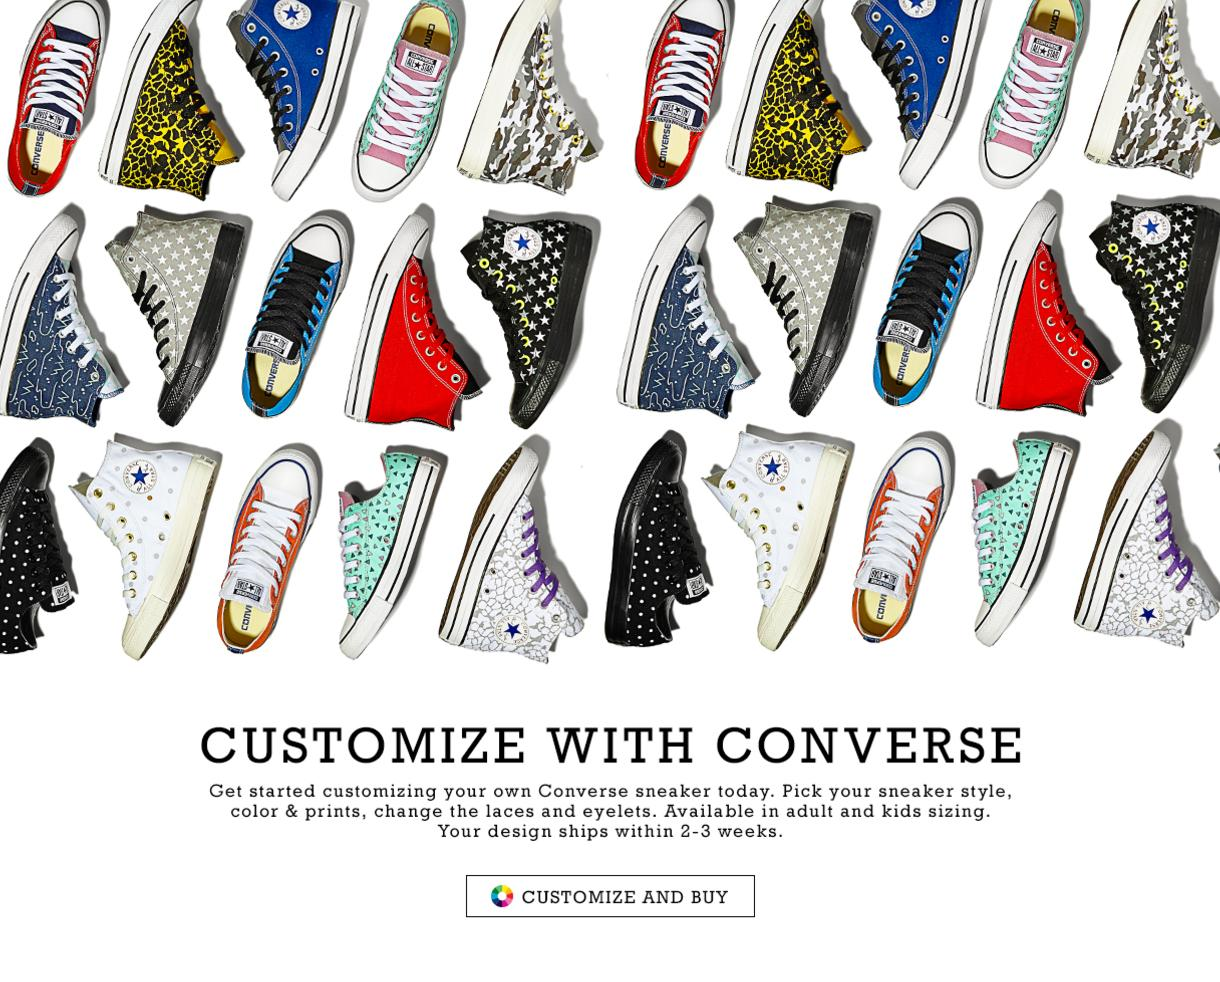 Design Your Own Converse Sneaker - Your Custom Design Ships within 2-3  Weeks! 36e79ea97dad